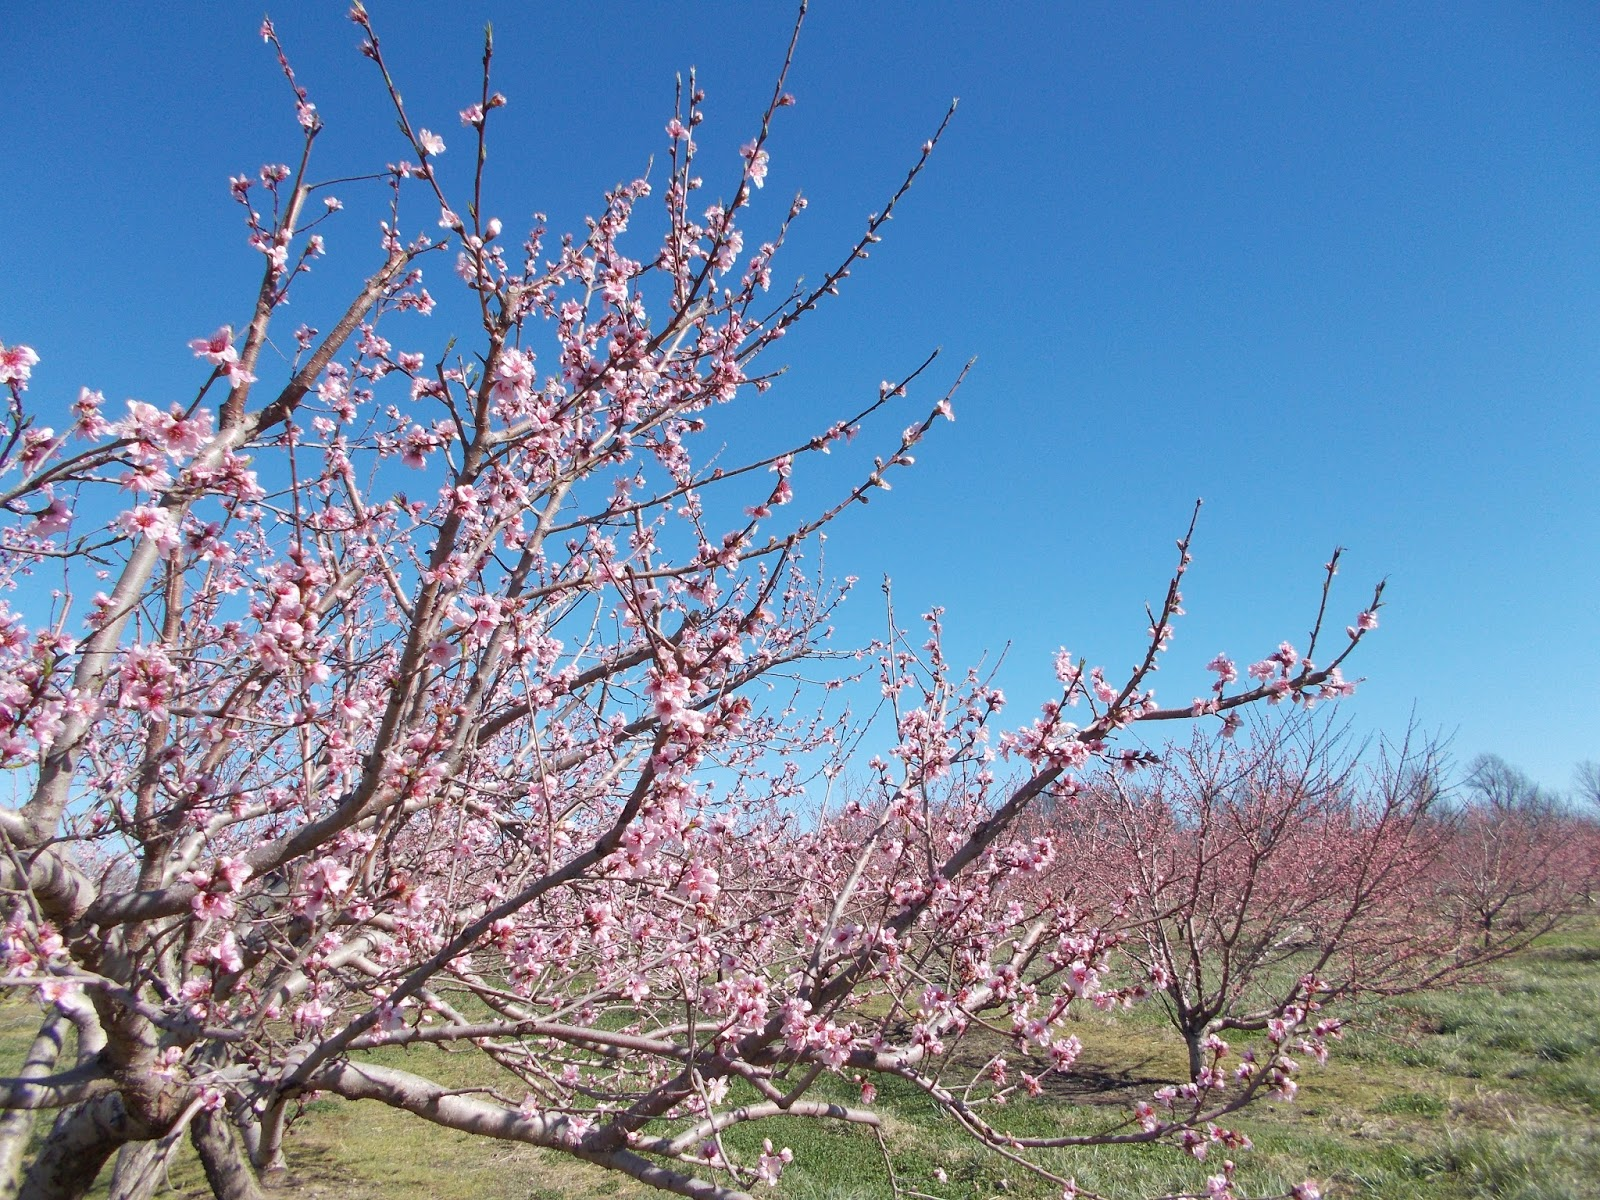 lower peach tree catholic single women A lower-carbohydrate, higher-fat diet reduces abdominal and intermuscular fat and increases insulin sensitivity in adults at risk of type 2 diabetes j nutr 2015 jan145(1):177s-83s 7 bazzano la et al effects of low-carbohydrate and low-fat diets: a randomized trial.